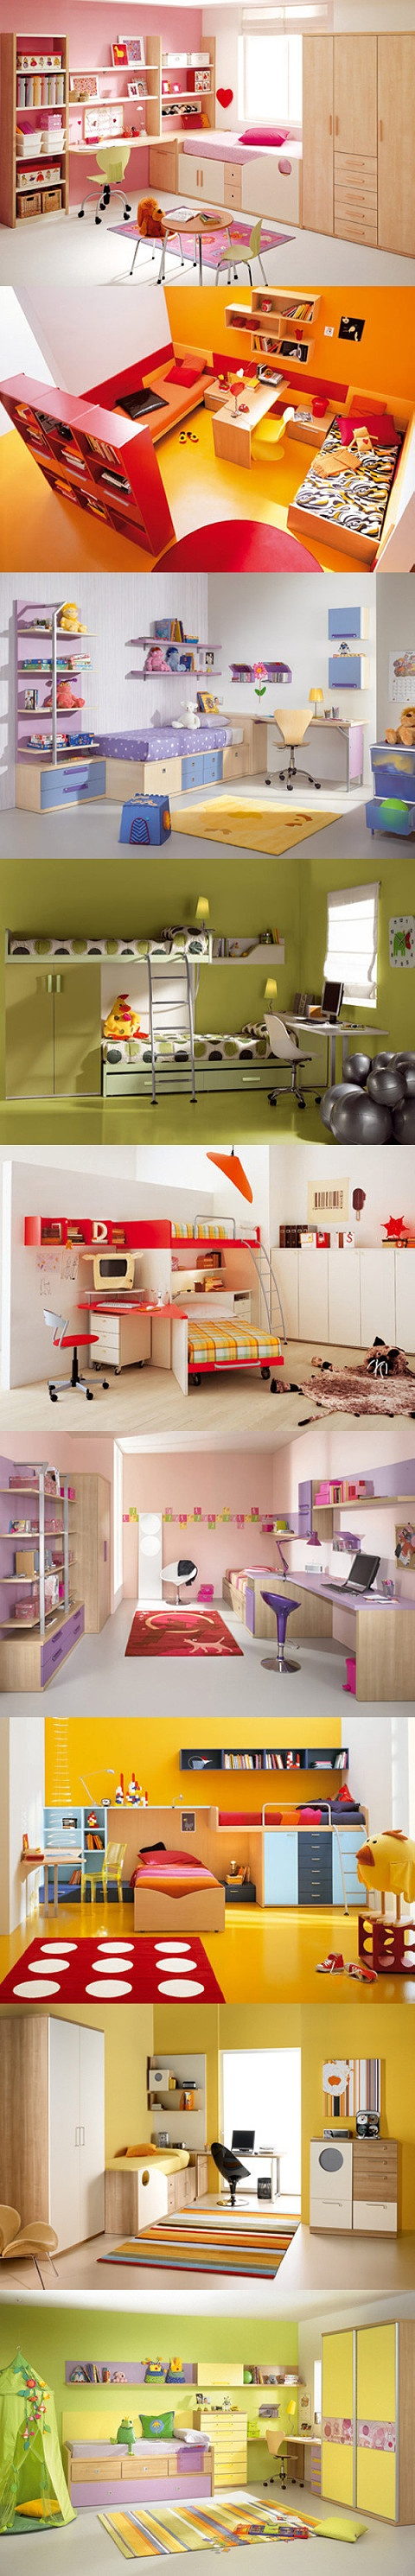 colorful - children's room